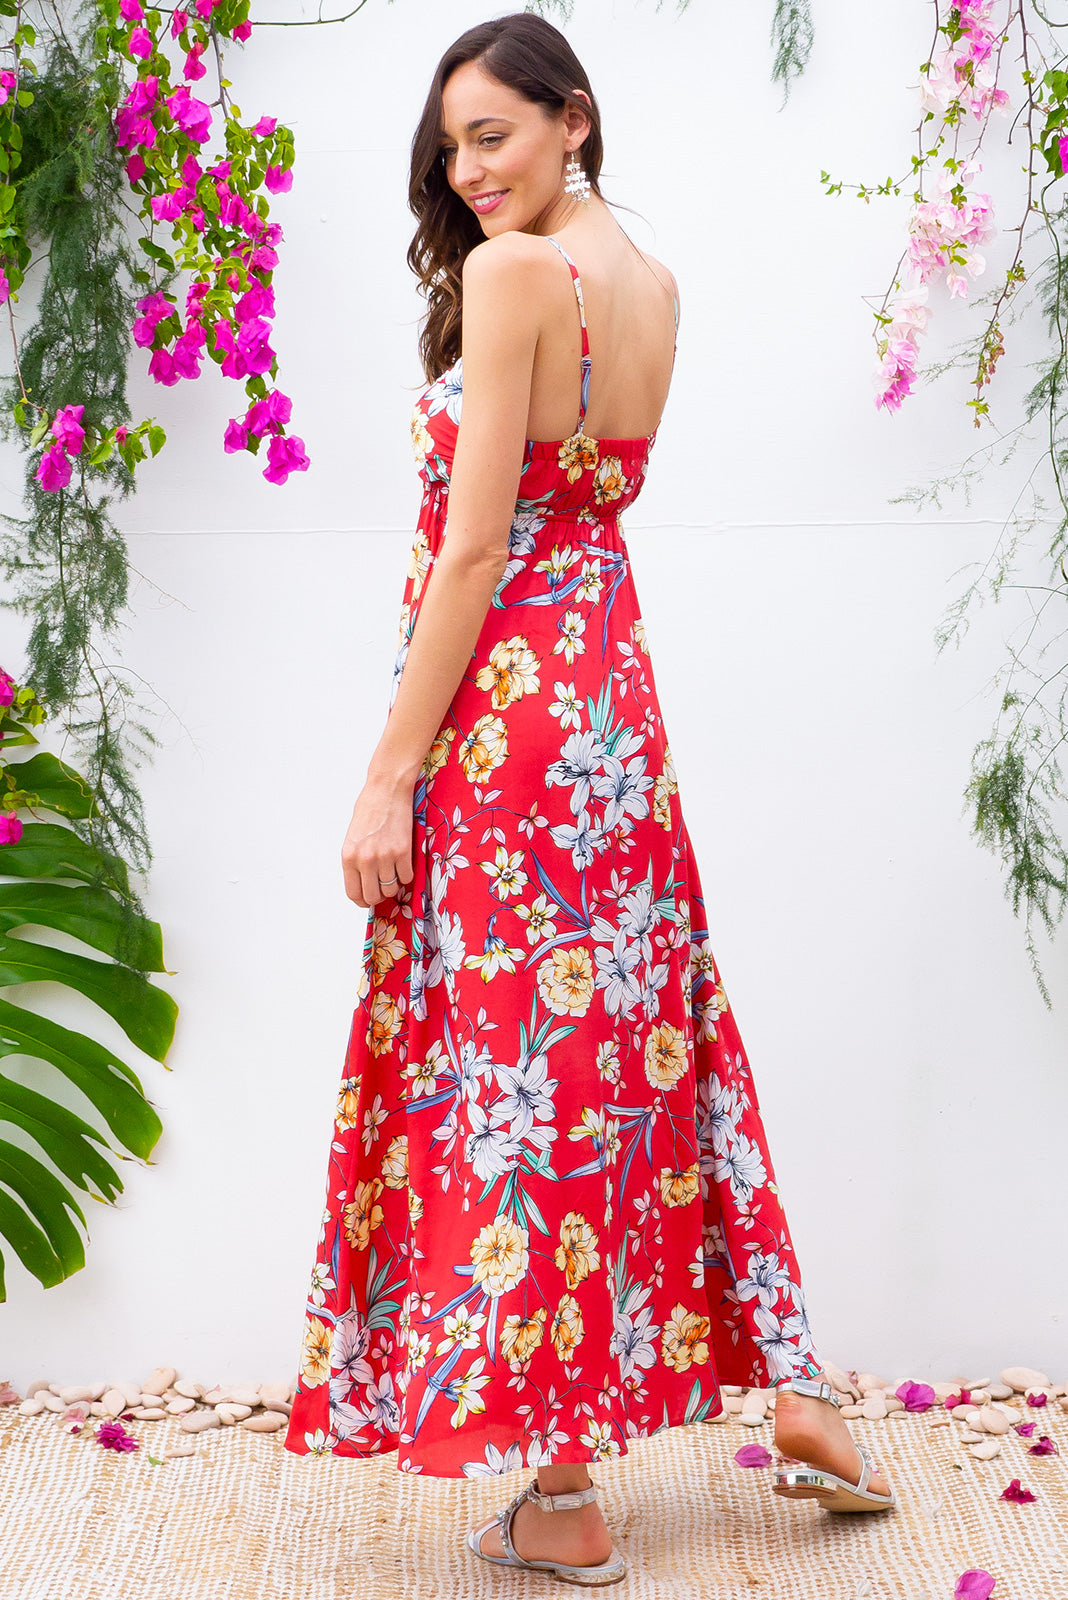 Emmy Summer Red Maxi Dress features a flattering empire line with thin shoulder straps and side pockets in a cool red floral print on woven 100% rayon